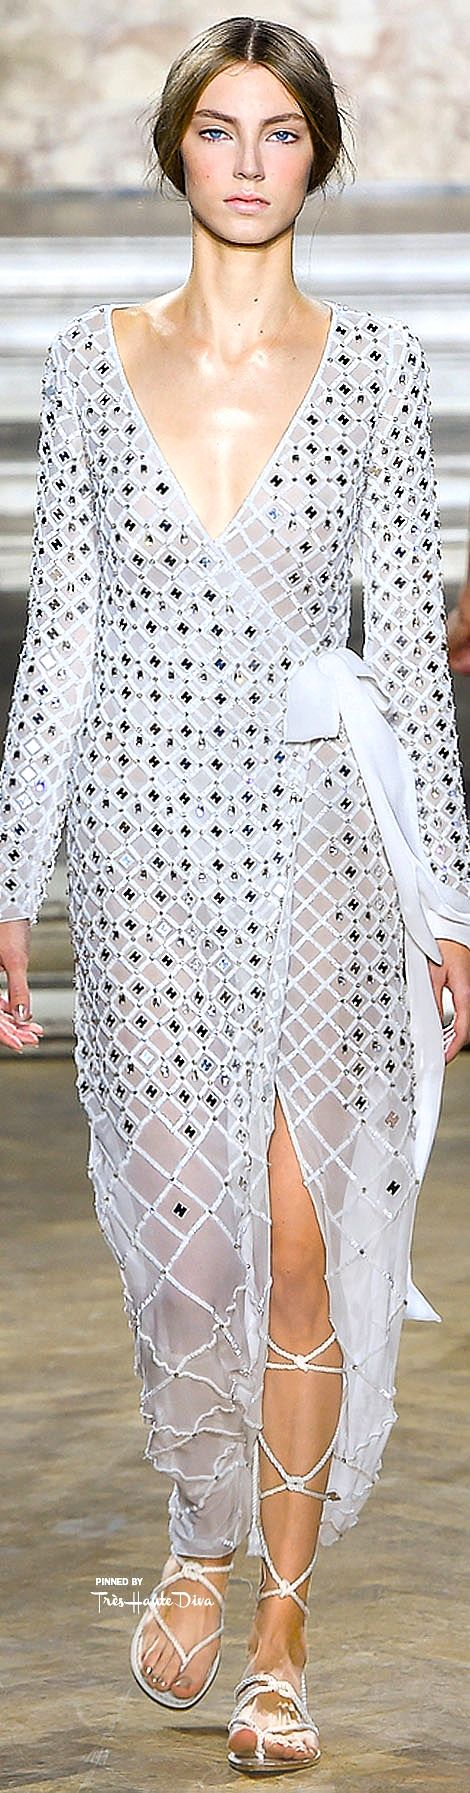 Temperly London Spring 2016 RTW ♔ Très Haute Diva ♔ For more fashion visit my website a http://www.treshautediva.com/temperley-london-spring-2016-pinterest